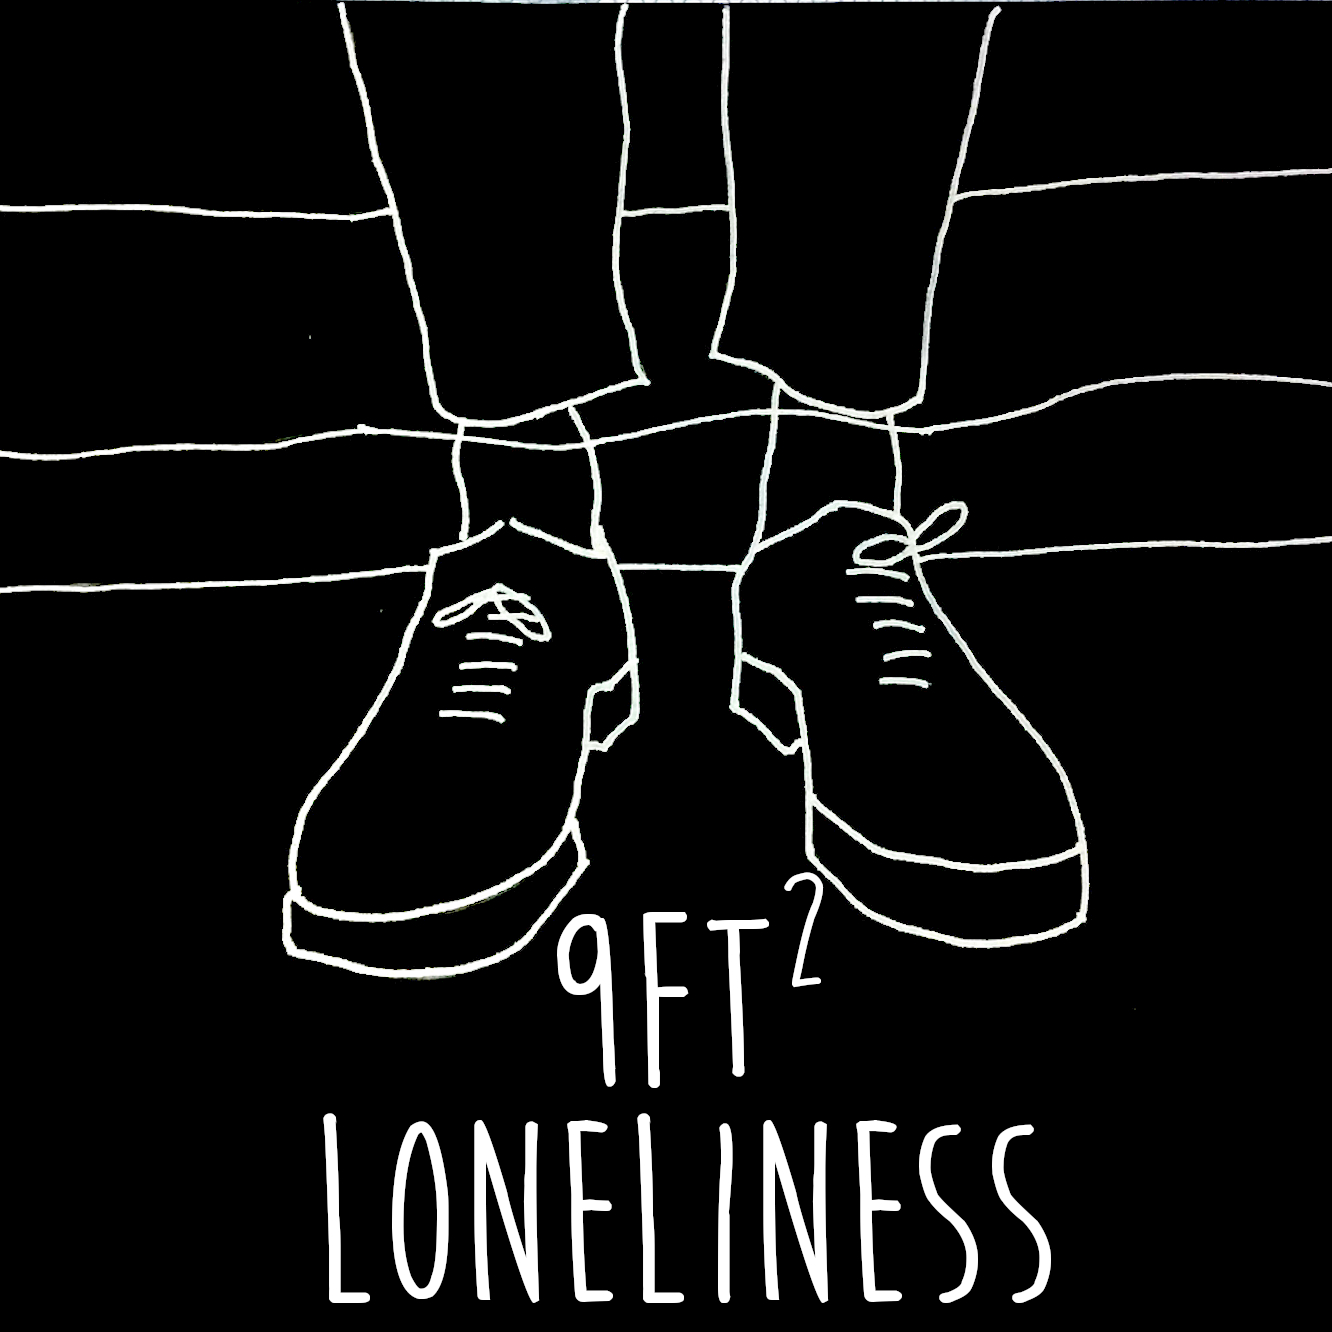 9ft²: Loneliness Thumbnail